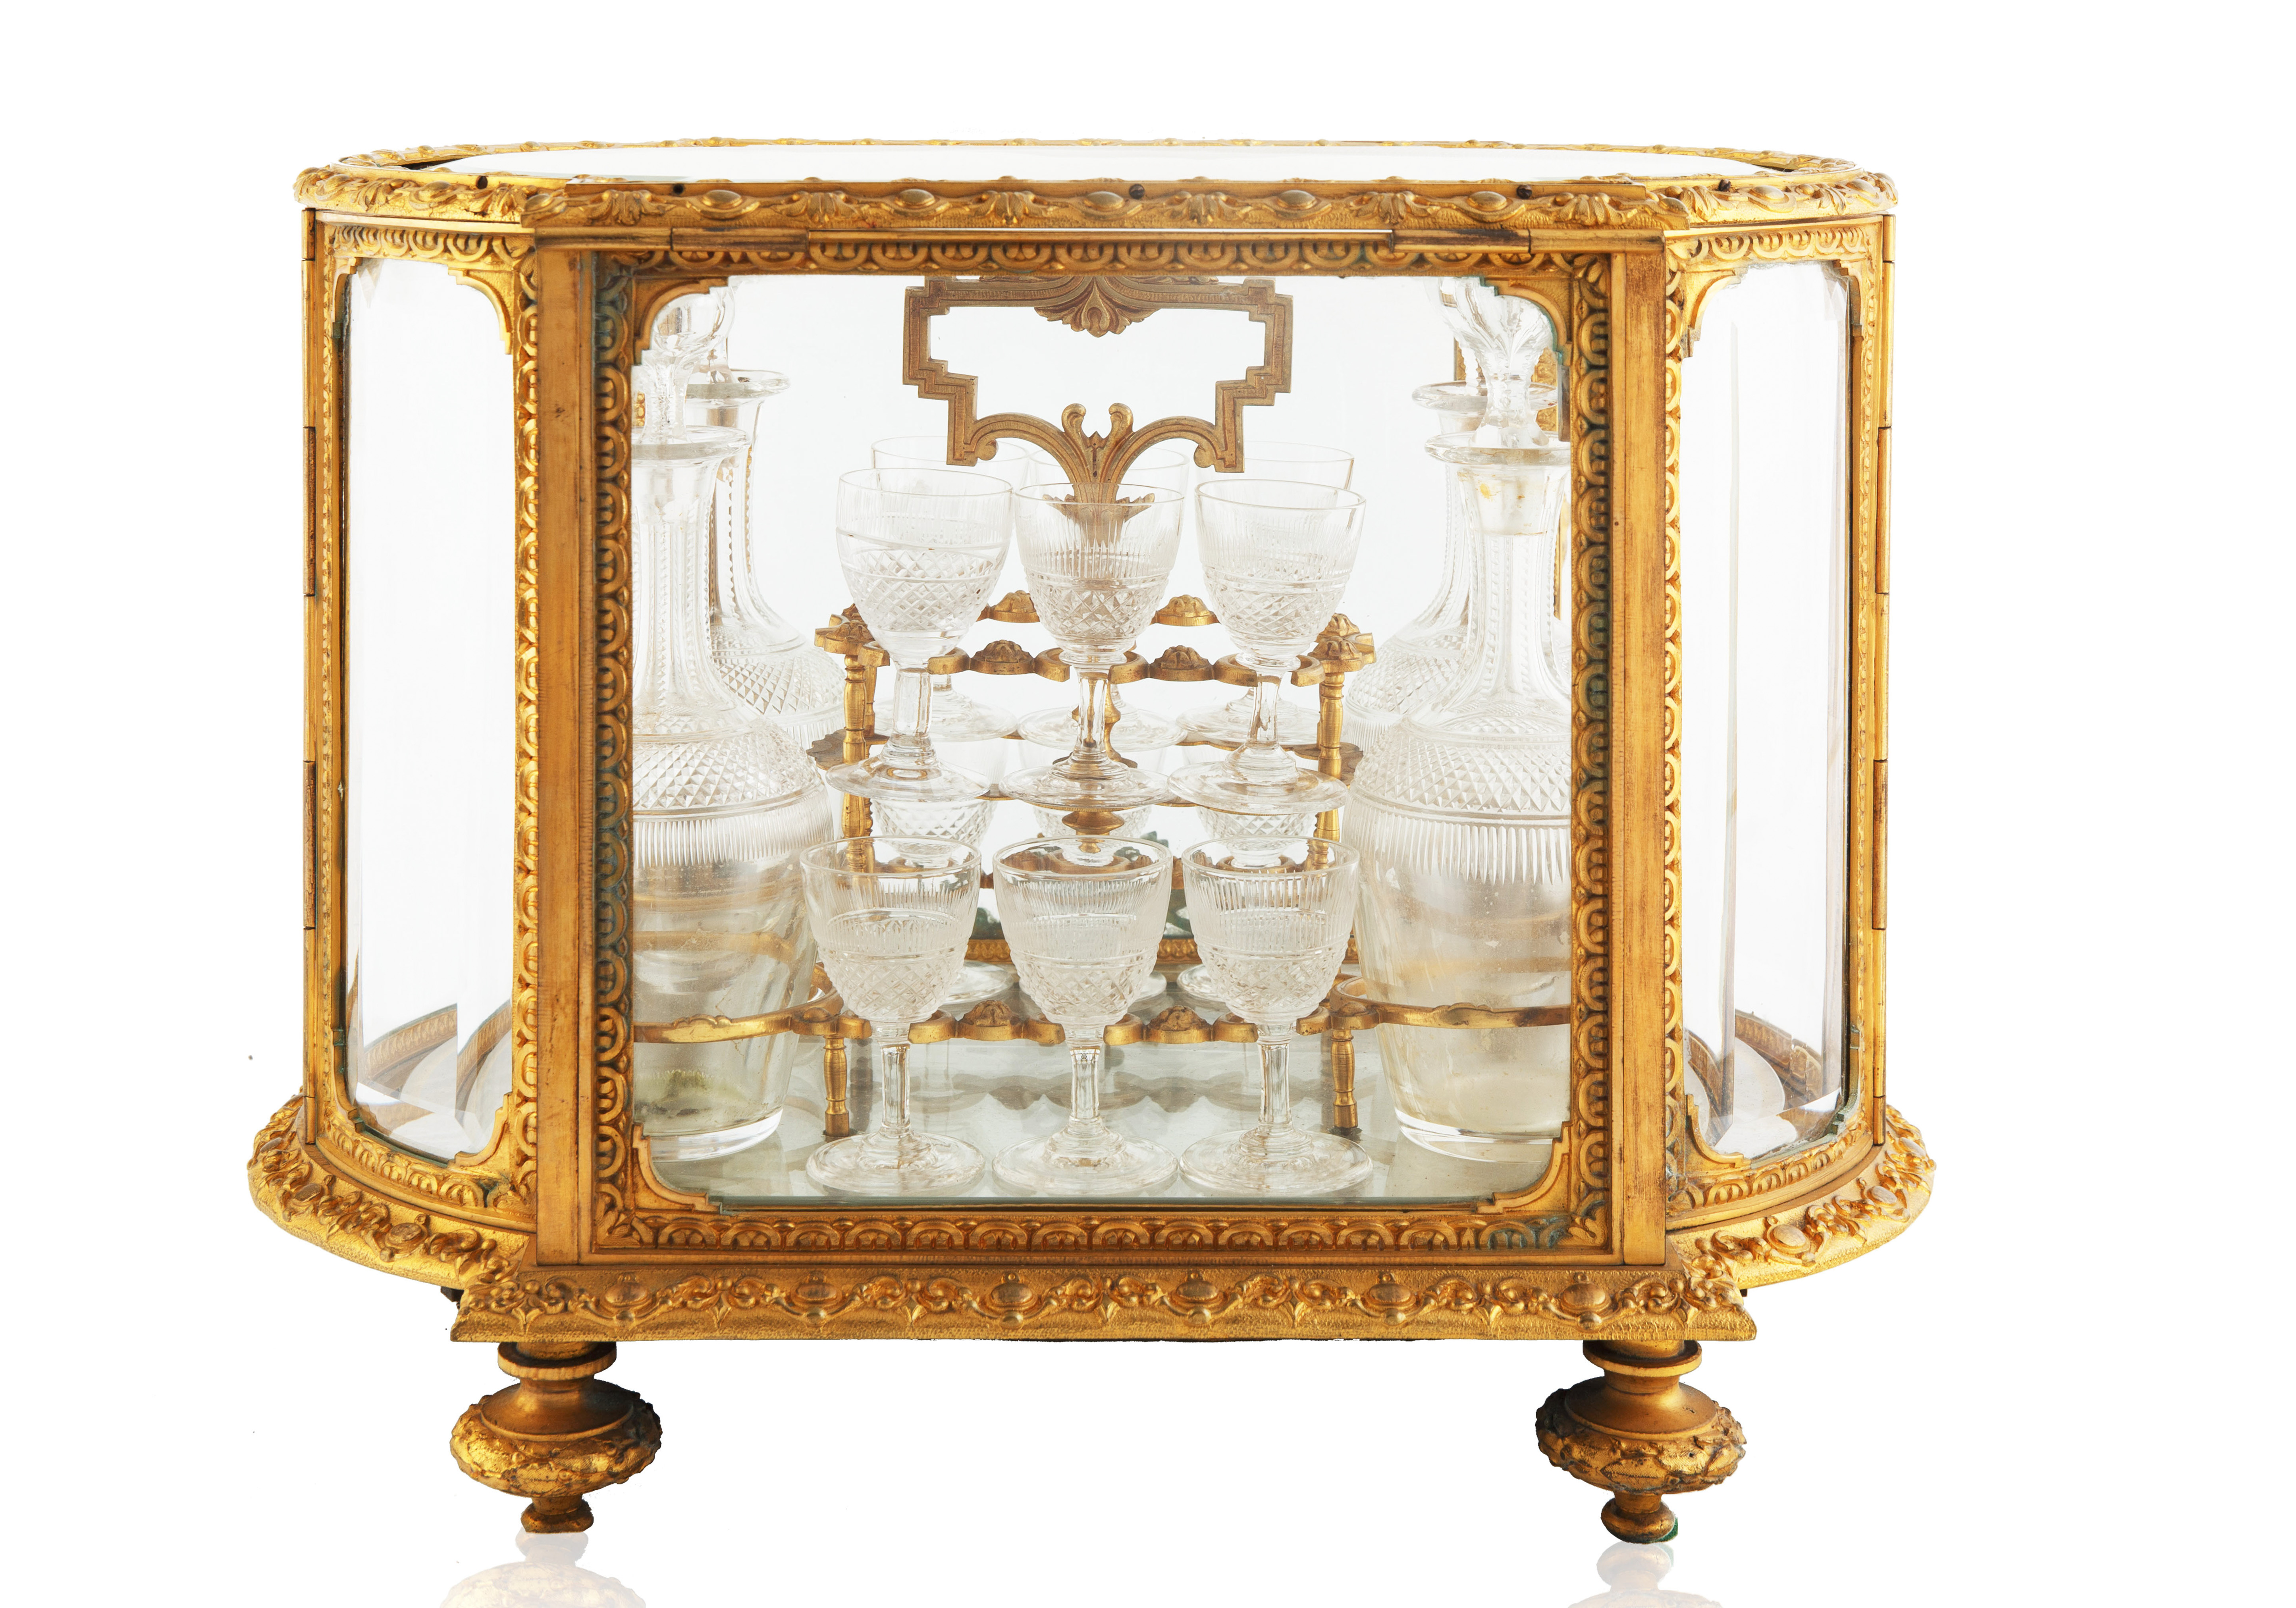 LATE 19TH-EARLY 20TH CENTURY FRENCH LOUIS XVI STYLE GILT BRONZE CAVE A LIQUEUR - Image 3 of 7